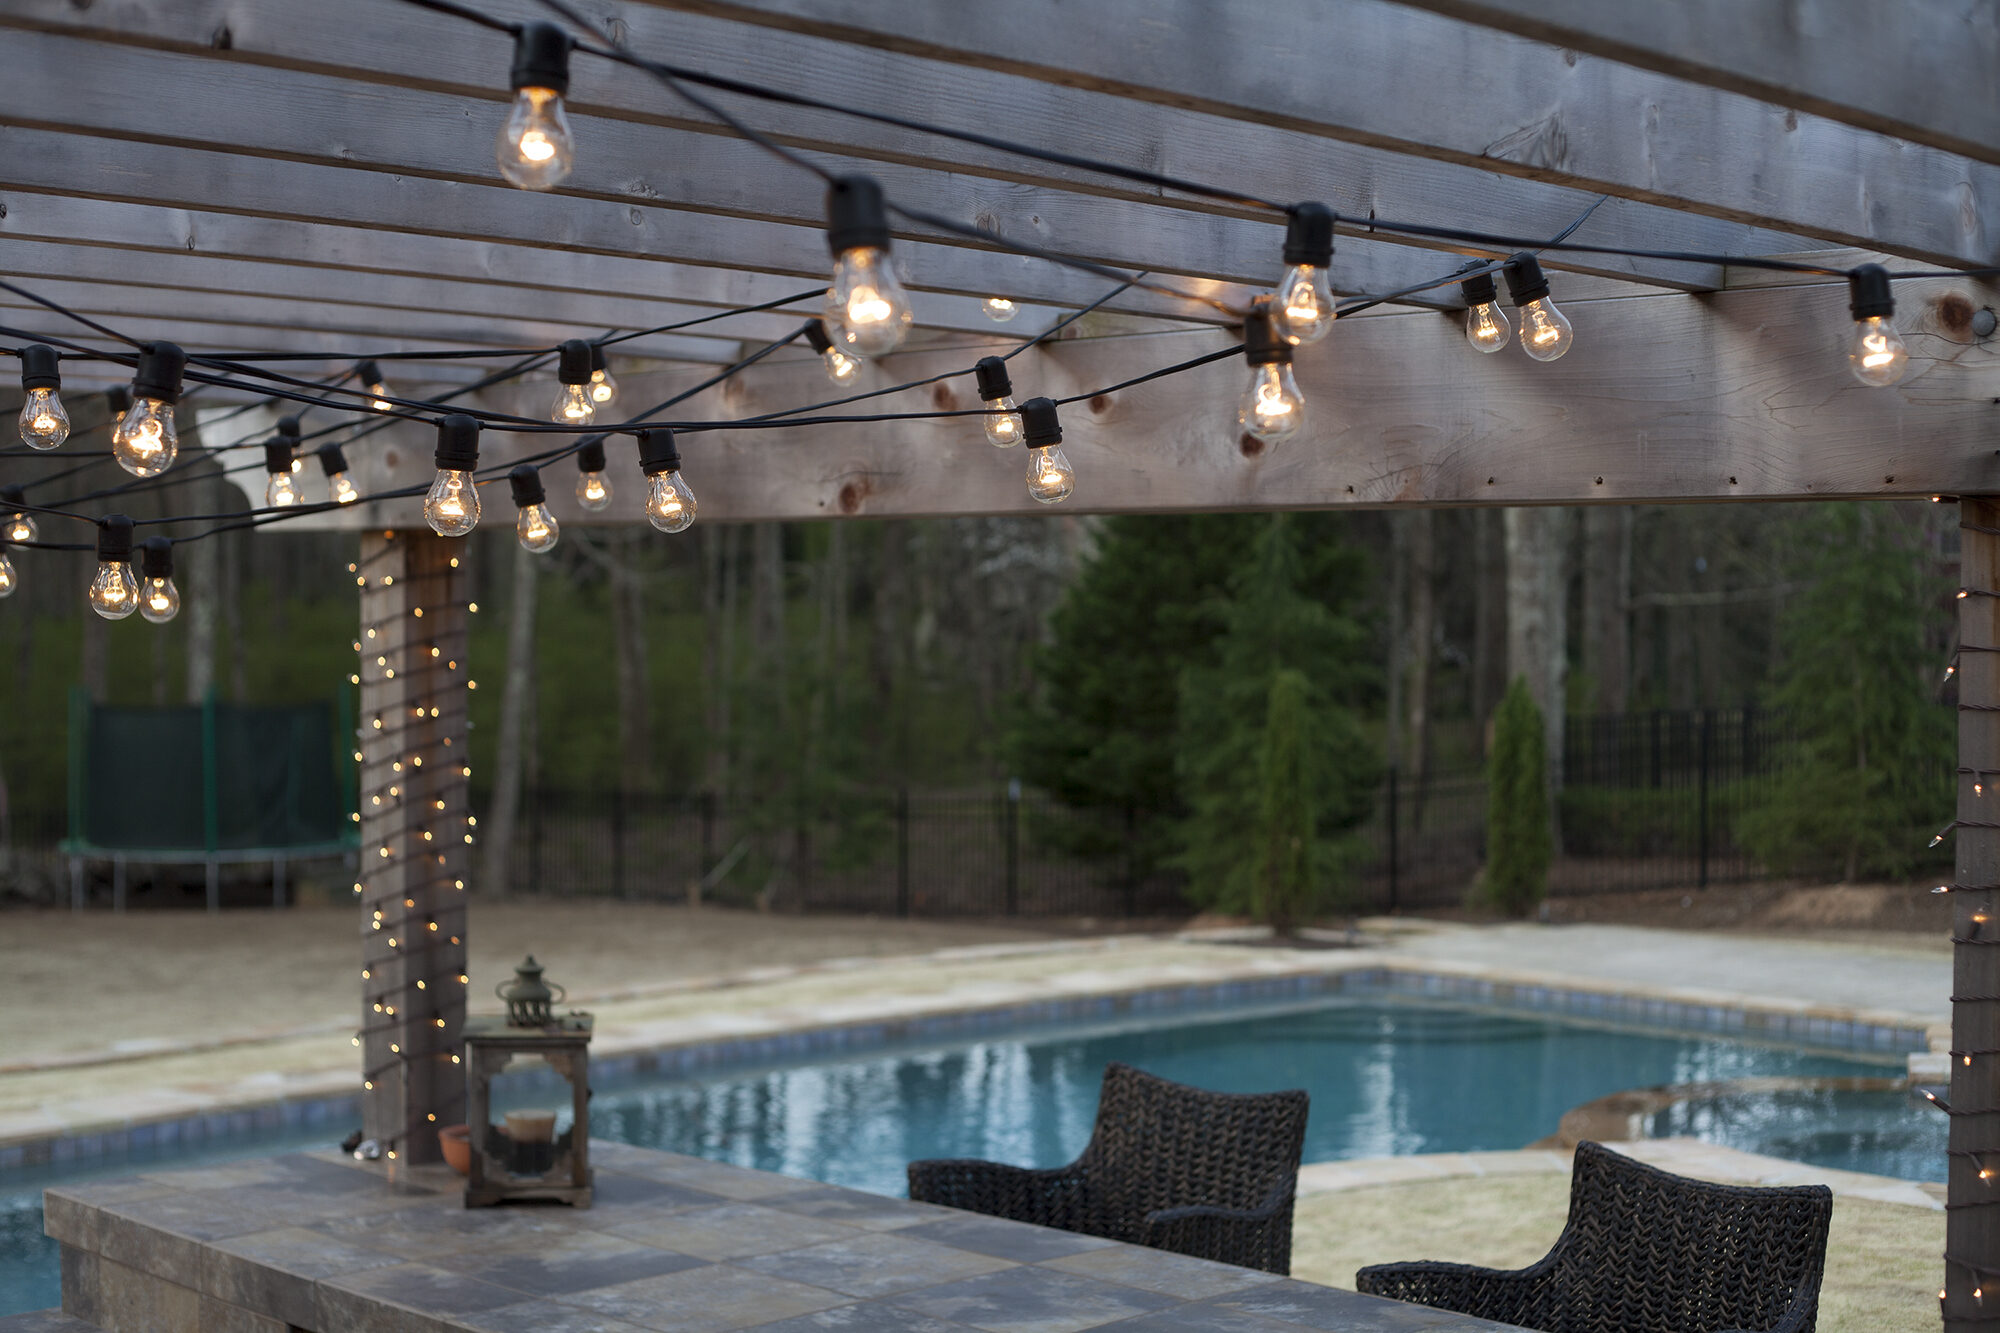 Hang String Lights Over Patio : Hanging Patio String Lights: A Pattern of Perfection - Yard Envy